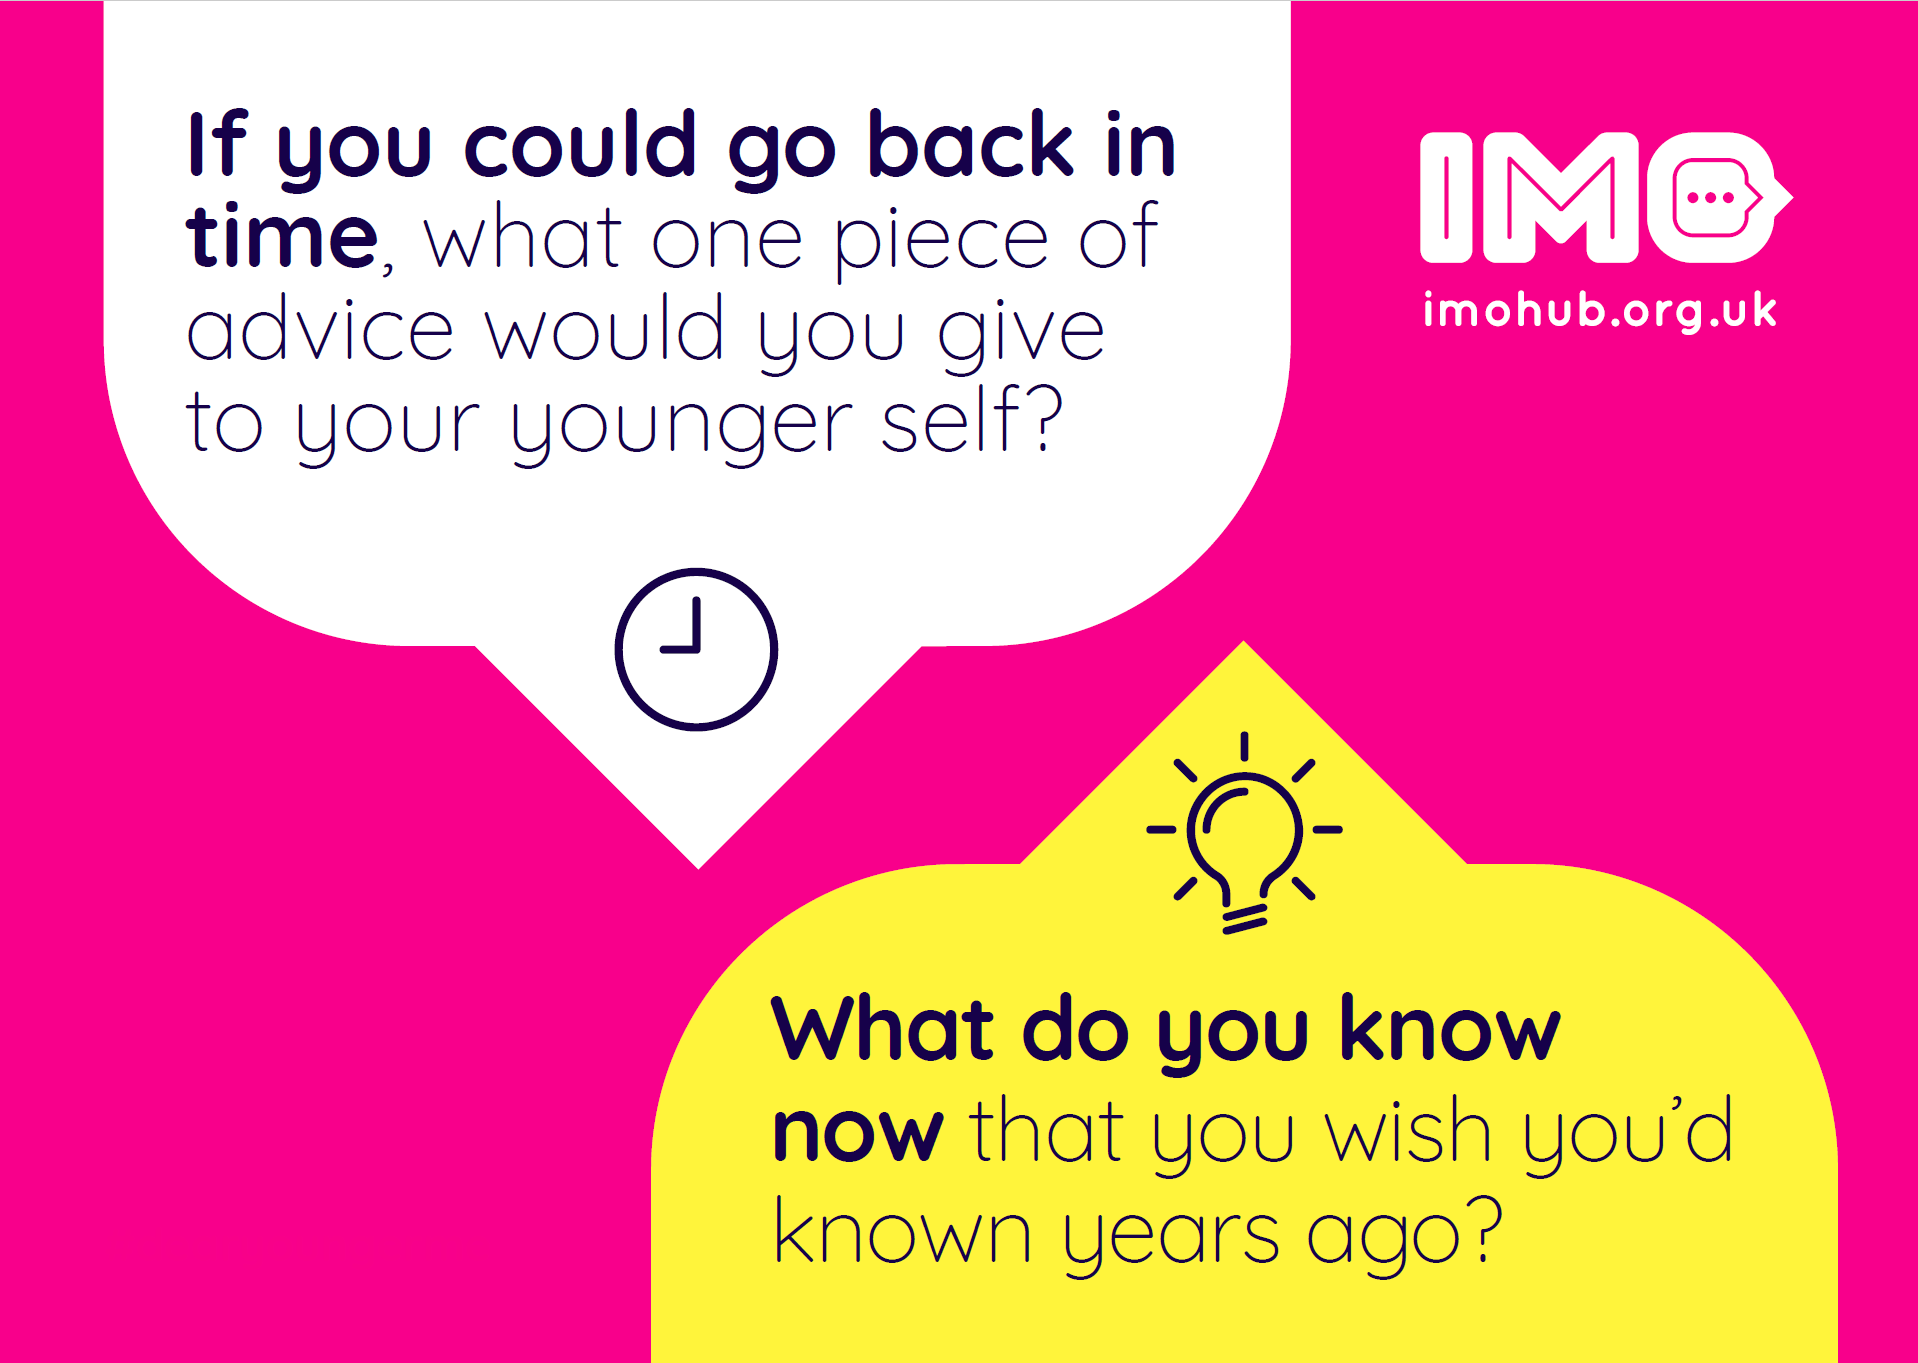 Dear younger me: advice to my younger self